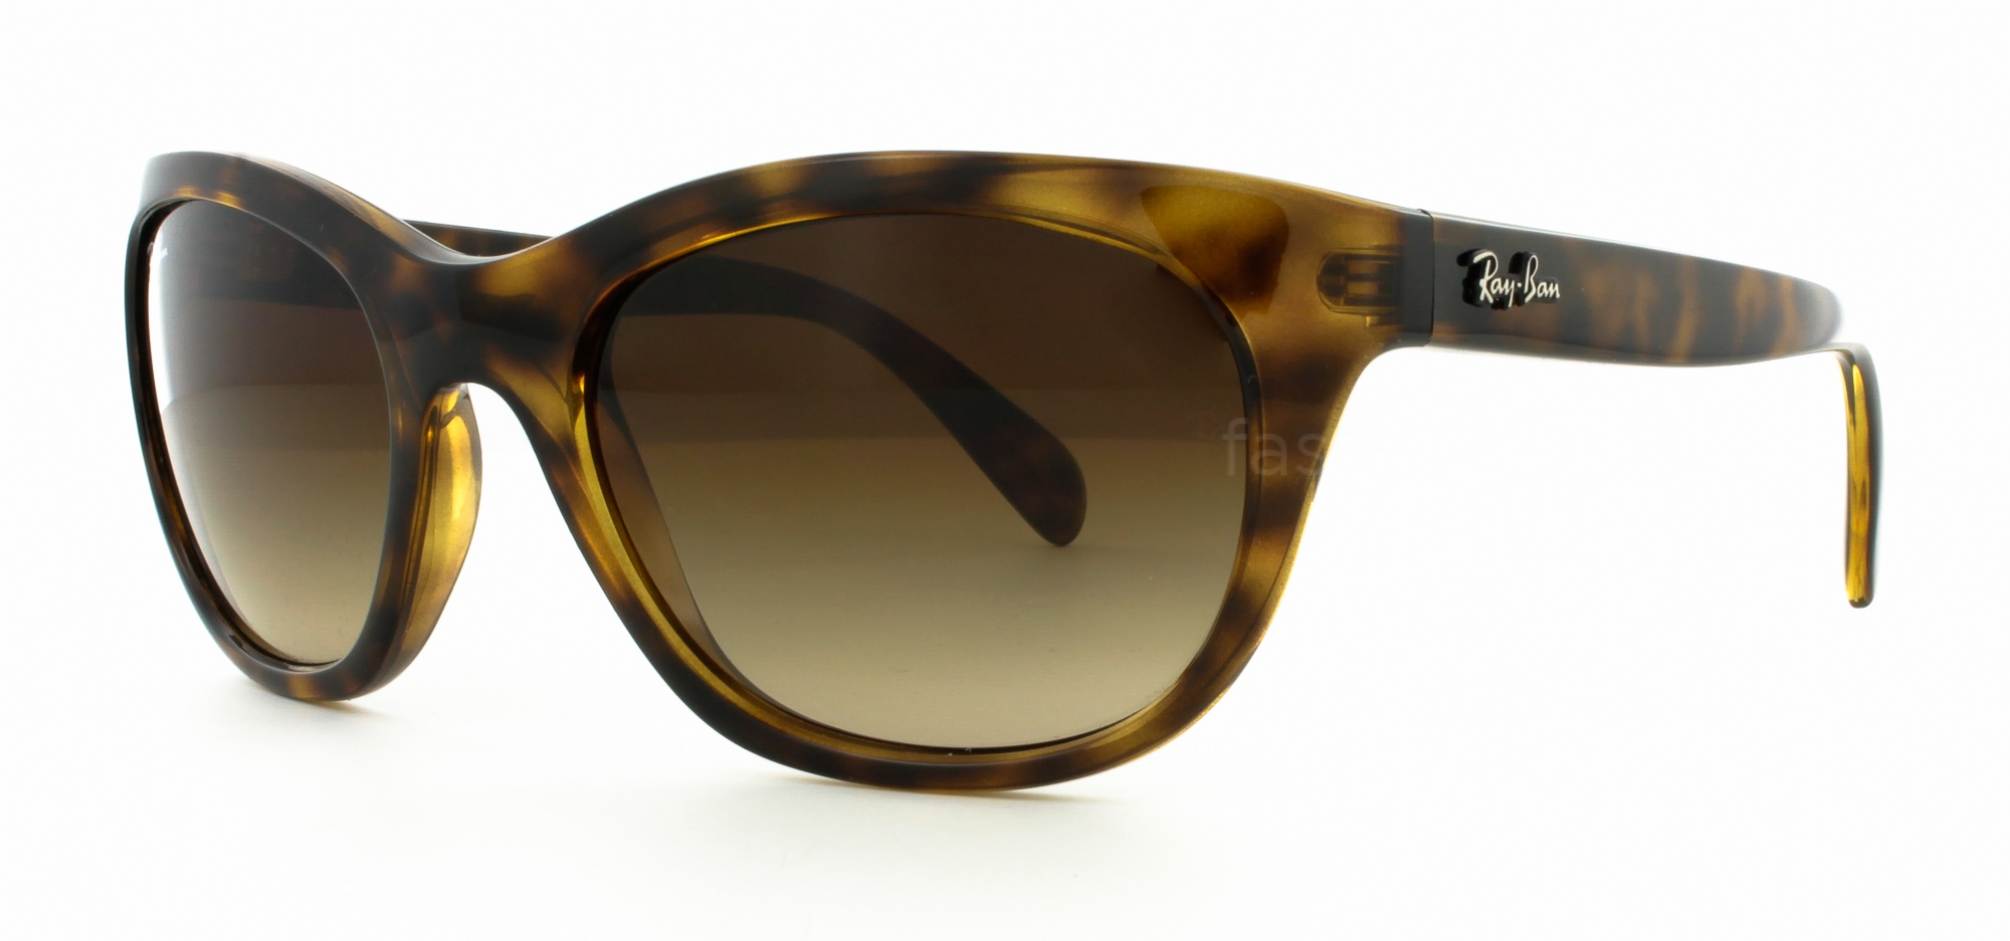 Eyeglass Frames Made In China : Ray Ban Wayfarer Eyeglasses Made In China